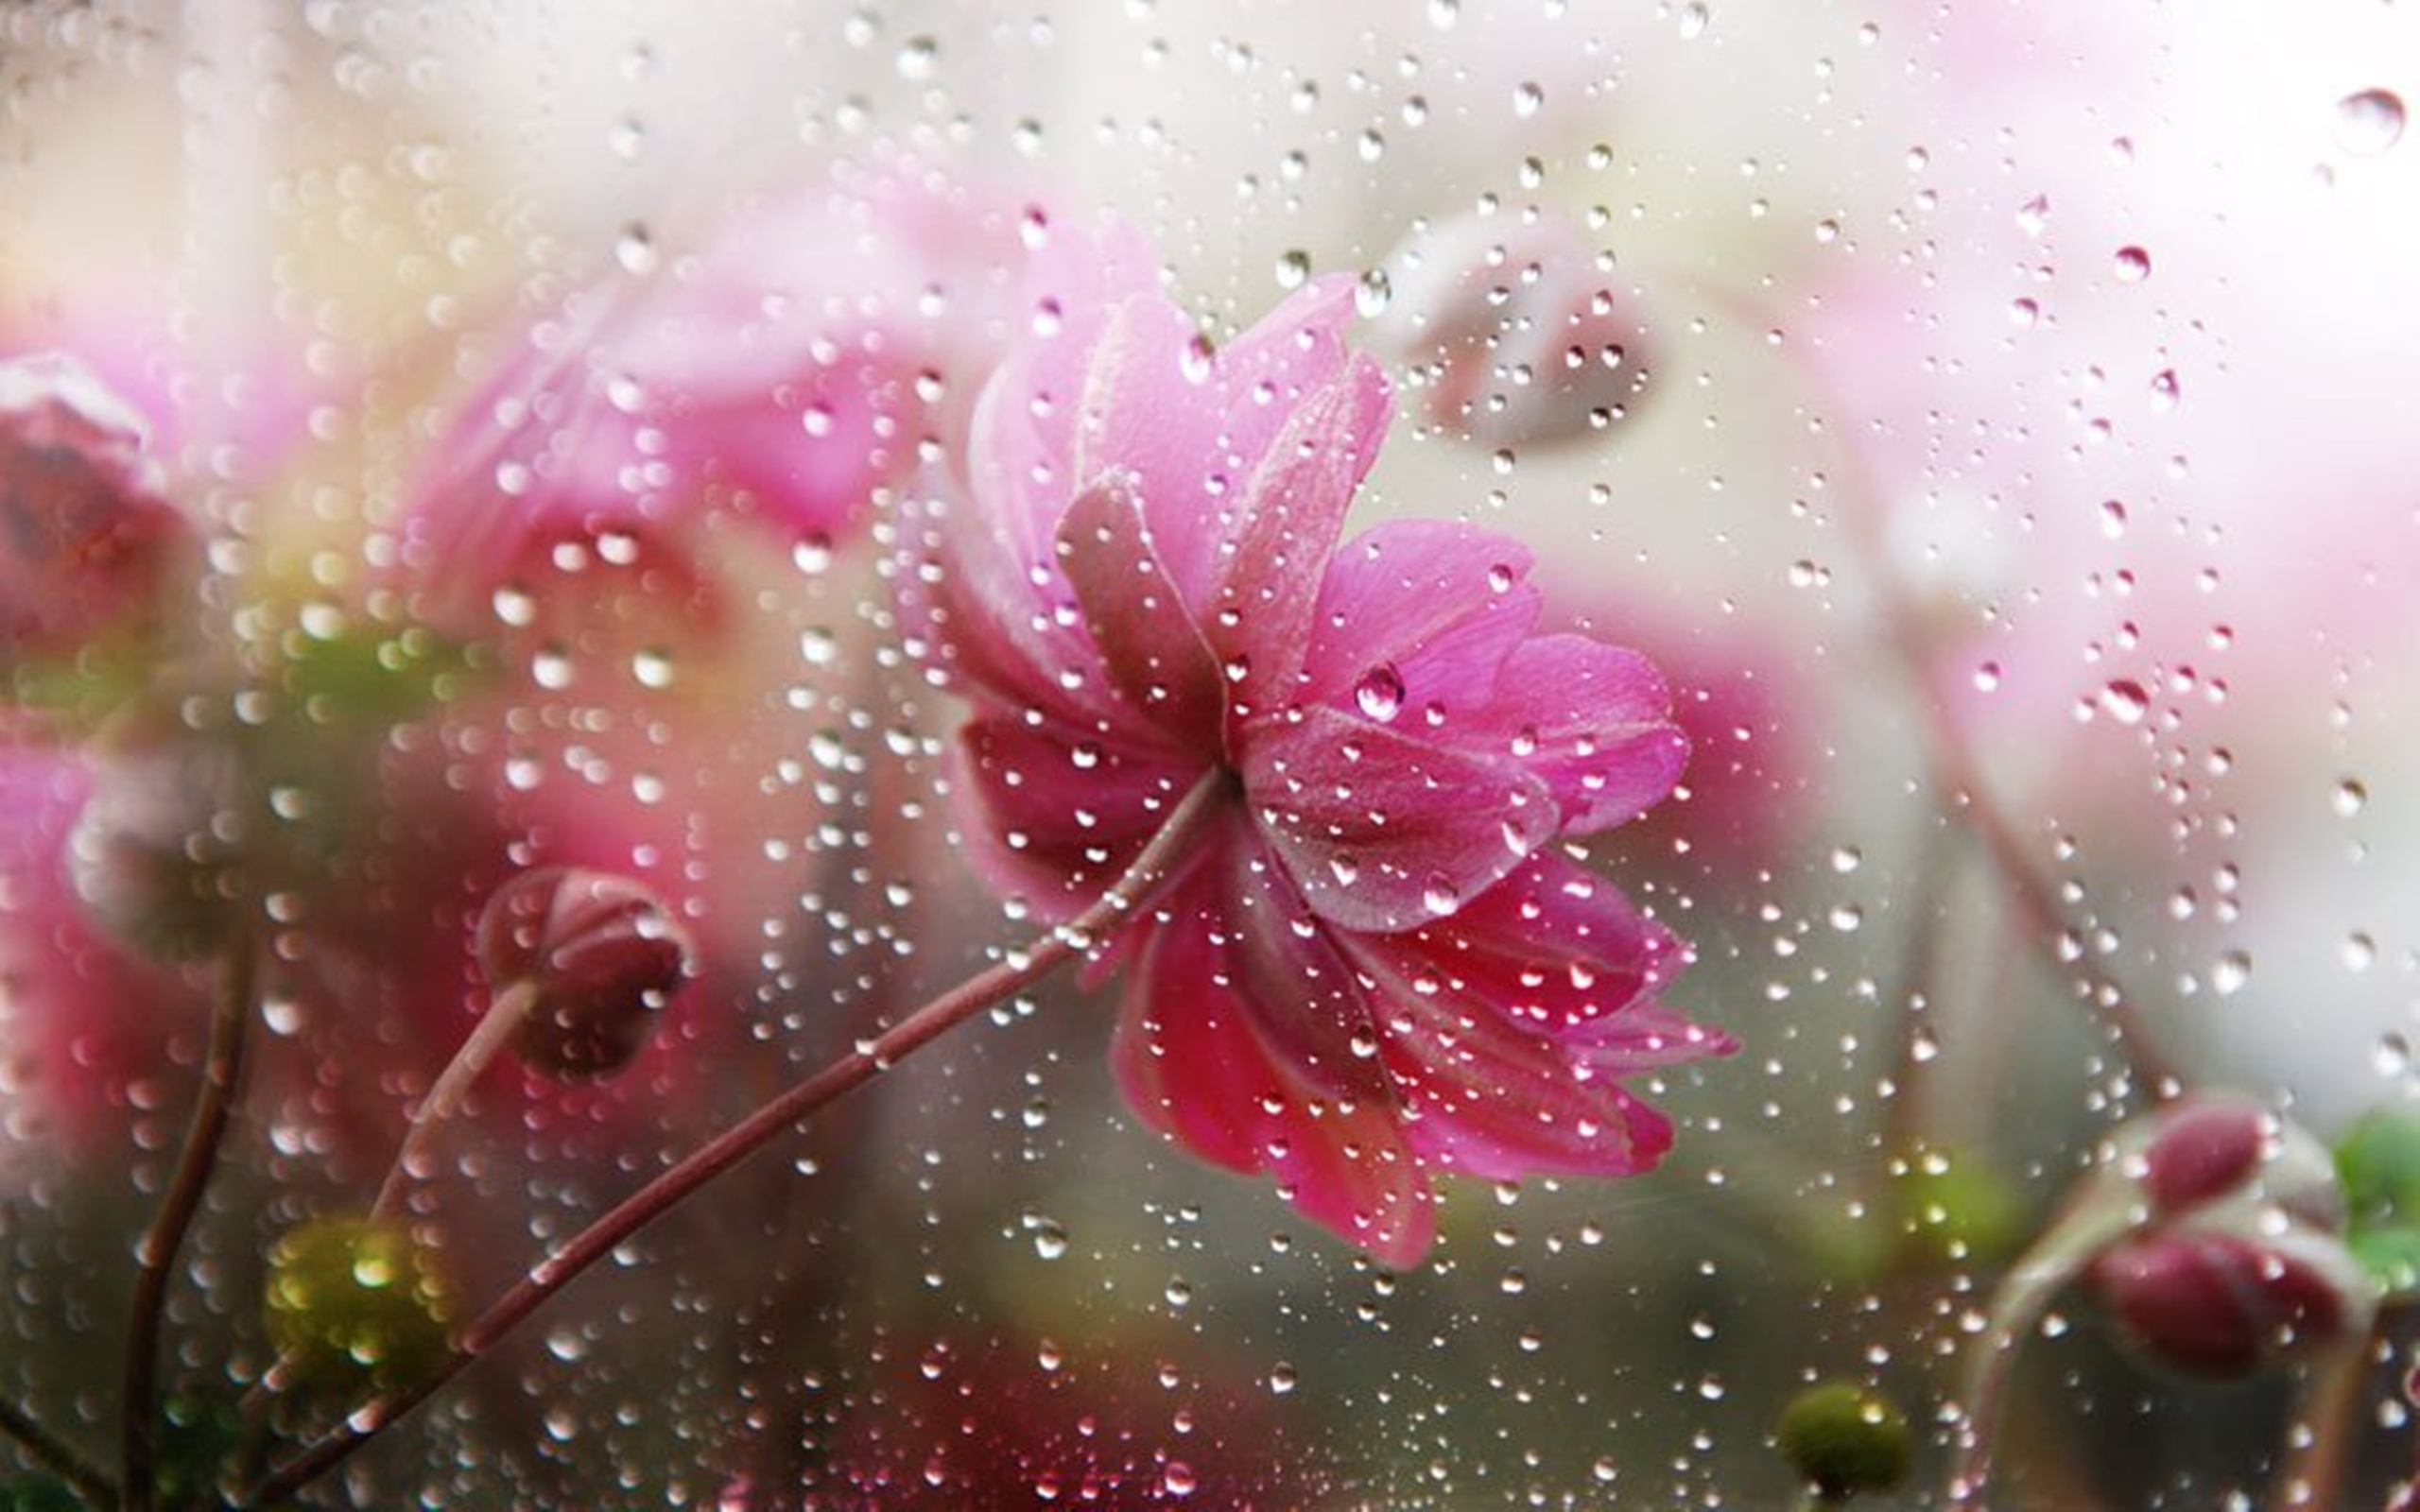 Falling In Love Hd Wallpapers Flowers In The Rain Wallpapers High Quality Download Free